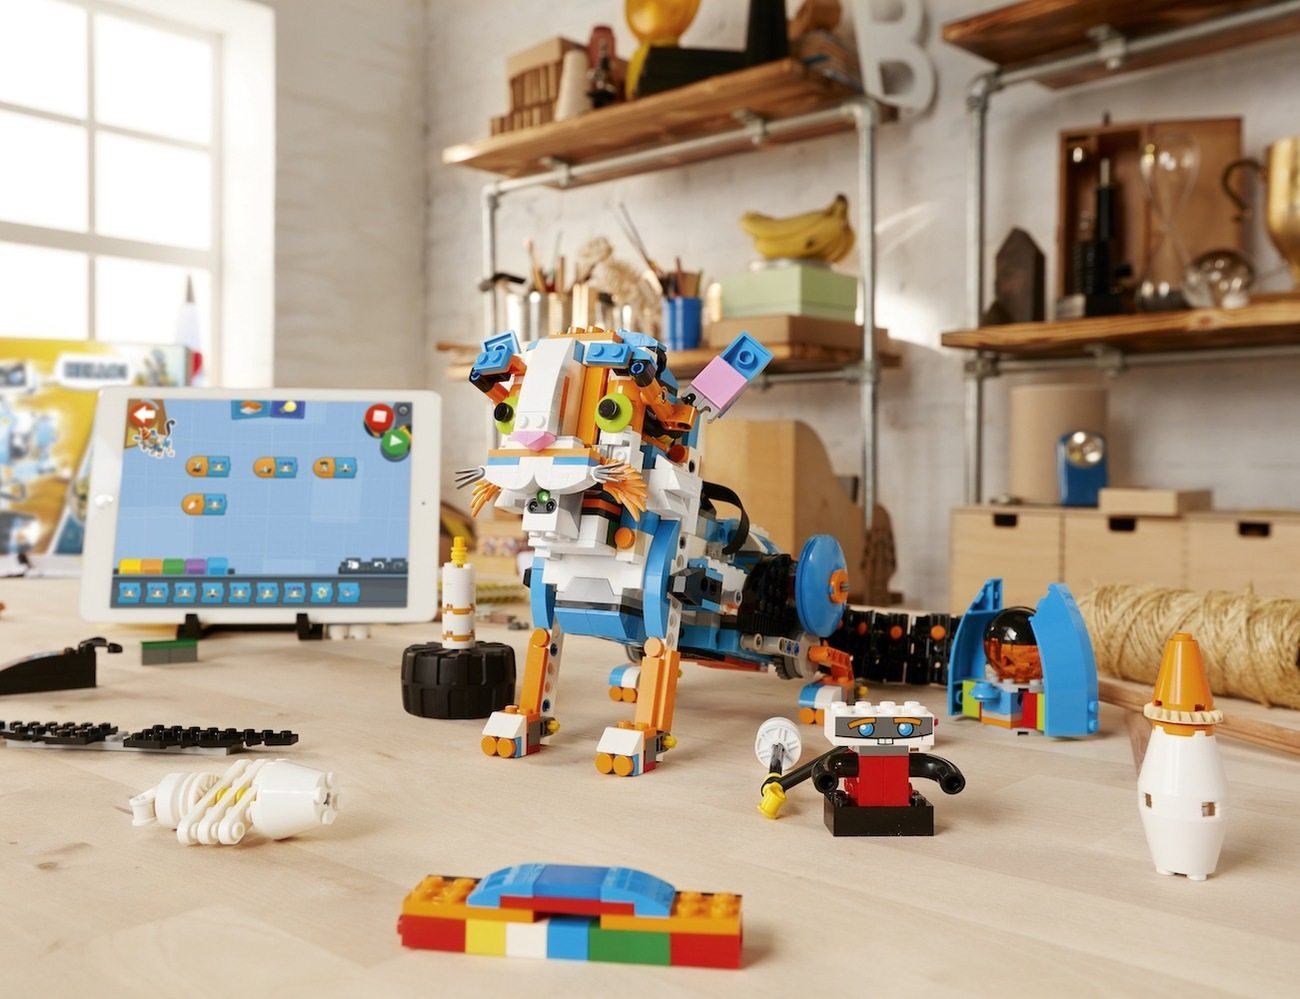 LEGO Boost Robot Building Kit